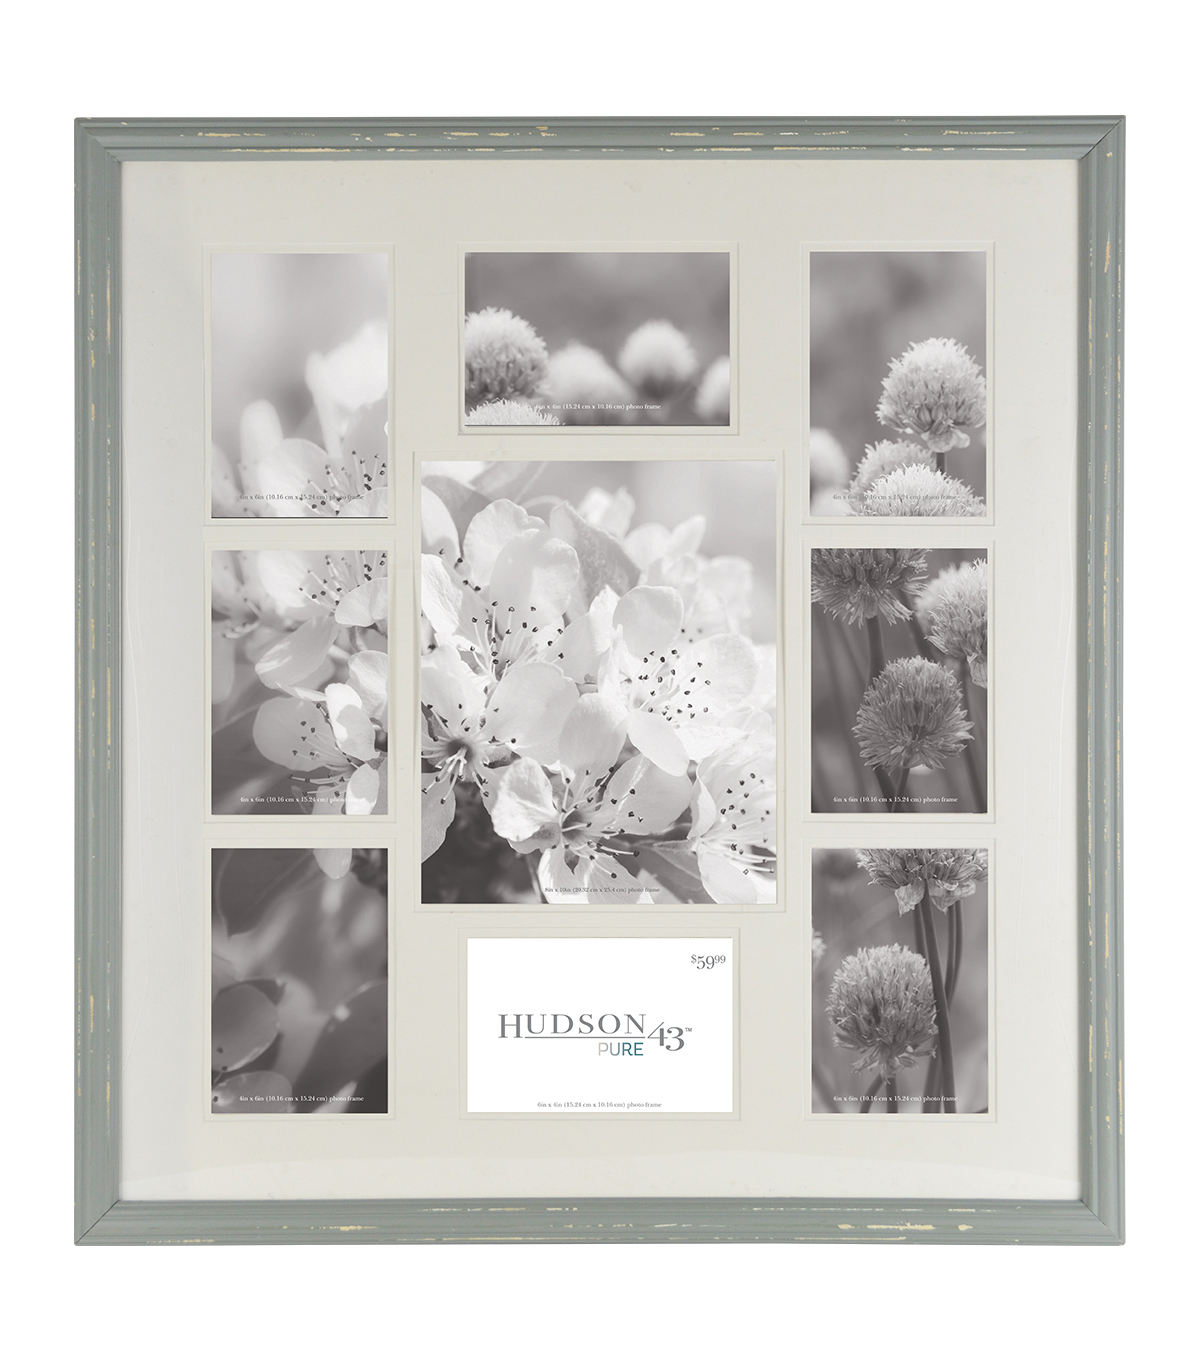 Hudson 43 Pure 9 Image Collage Frame 24\'\'x22\'\'-Gray | JOANN